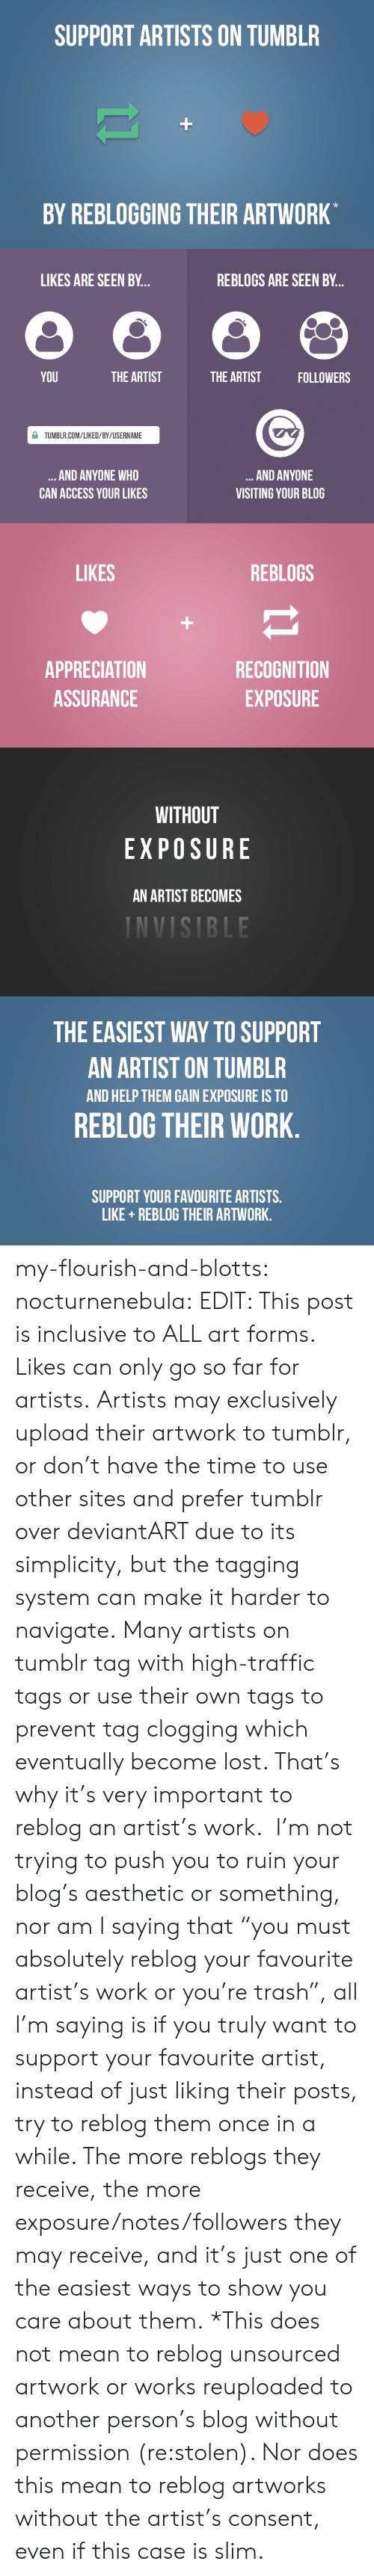 "Liking: SUPPORT ARTISTS ON TUMBLR  +  BY REBLOGGING THEIR ARTWORK   LIKES ARE SEEN BY...  REBLOGS ARE SEEN BY...  YOU  THE ARTIST  THE ARTIST  FOLLOWERS  TUMBLR.COM/LIKED/BY/USERNAME  ...AND ANYONE  ...AND ANYONE WHO  CAN ACCESS YOUR LIKES  VISITING YOUR BLOG   LIKES  REBLOGS  APPRECIATION  RECOGNITION  ASSURANCE  EXPOSURE  +   WITHOUT  EXPOSURE  AN ARTIST BECOMES  INVISIBLE   THE EASIEST WAY TO SUPPORT  AN ARTIST ON TUMBLR  AND HELP THEM GAIN EXPOSURE IS TO  REBLOG THEIR WORK.  SUPPORT YOUR FAVOURITE ARTISTS.  LIKE+REBLOG THEIR ARTWORK. my-flourish-and-blotts: nocturnenebula‌:  EDIT: This post is inclusive to ALL art forms. Likes can only go so far for artists. Artists may exclusively upload their artwork to tumblr, or don't have the time to use other sites and prefer tumblr over deviantART due to its simplicity, but the tagging system can make it harder to navigate. Many artists on tumblr tag with high-traffic tags or use their own tags to prevent tag clogging which eventually become lost. That's why it's very important to reblog an artist's work.  I'm not trying to push you to ruin your blog's aesthetic or something, nor am I saying that ""you must absolutely reblog your favourite artist's work or you're trash"", all I'm saying is if you truly want to support your favourite artist, instead of just liking their posts, try to reblog them once in a while. The more reblogs they receive, the more exposure/notes/followers they may receive, and it's just one of the easiest ways to show you care about them. *This does not mean to reblog unsourced artwork or works reuploaded to another person's blog without permission (re:stolen). Nor does this mean to reblog artworks without the artist's consent, even if this case is slim."